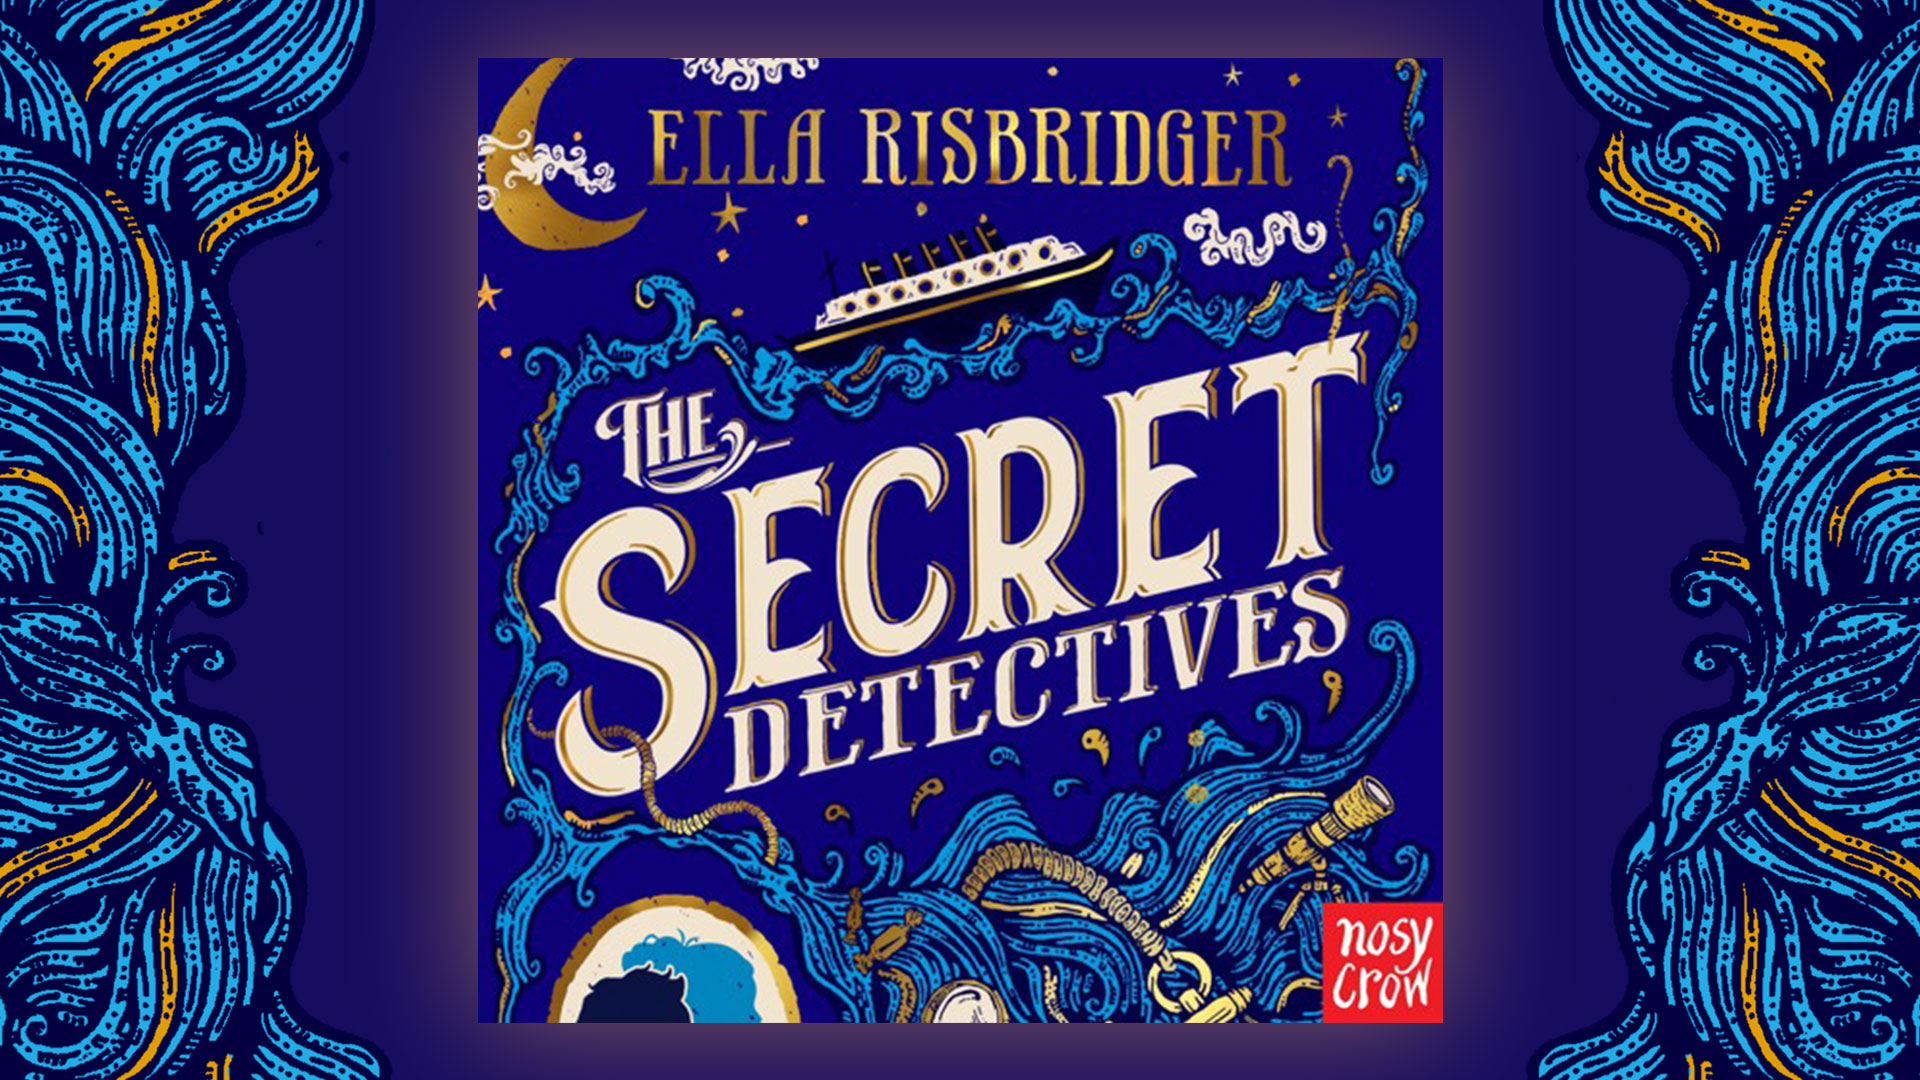 The Secret Detectives audiobook is available now